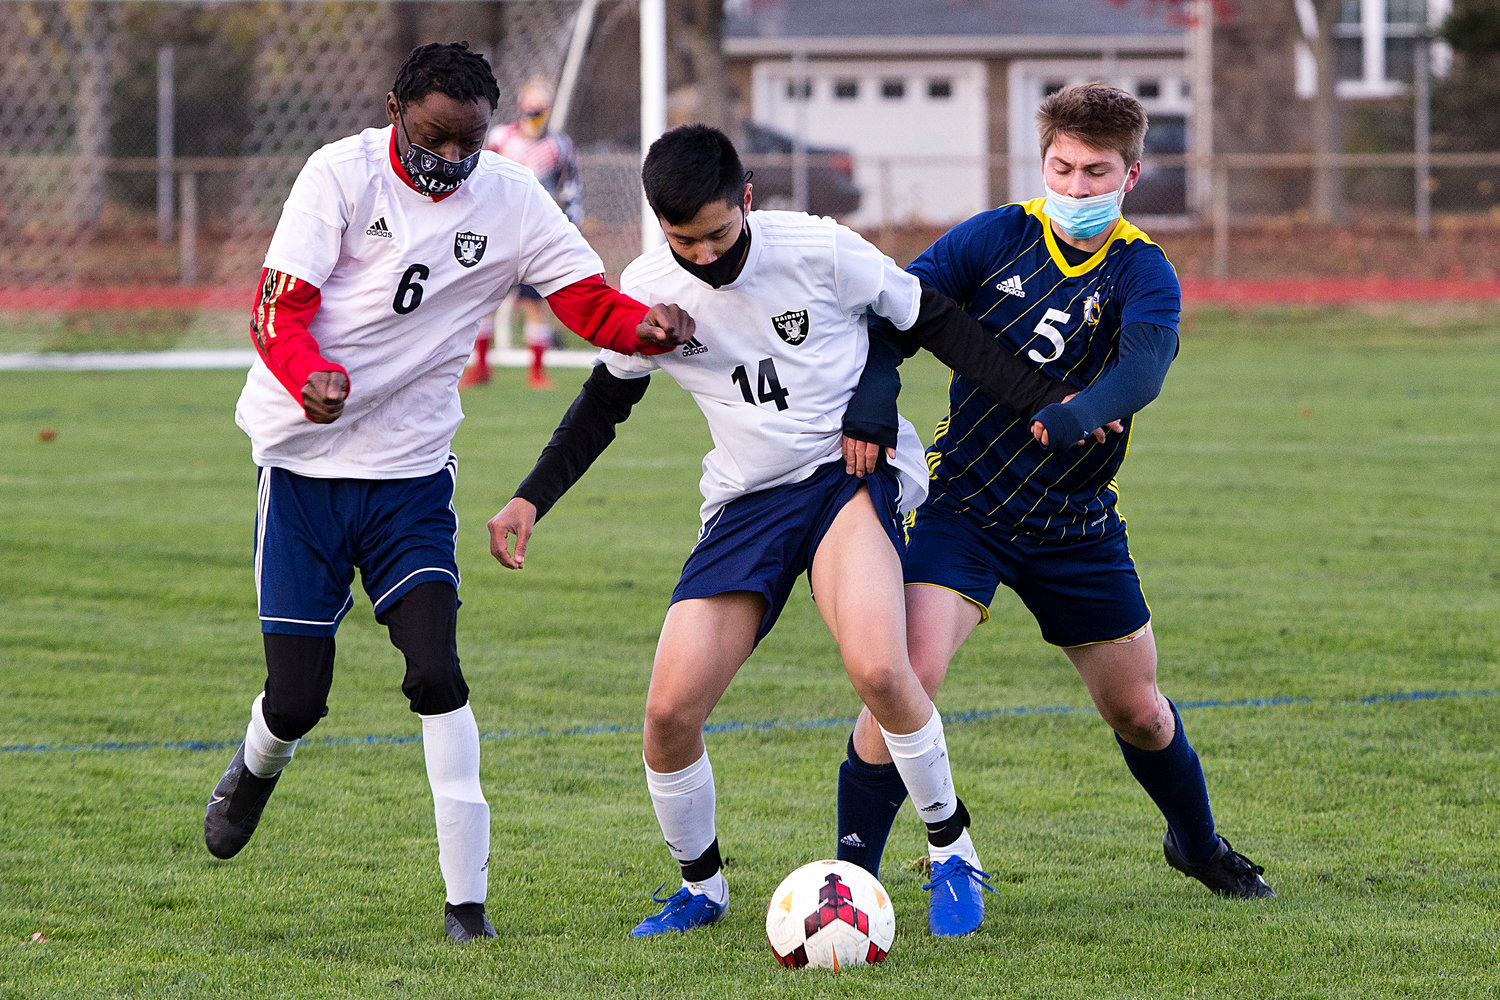 Samuel Faulkner battles a pair of Shea opponents for possession of the ball. Barrington beat Shea, but lost to South Kingstown in the playoffs on Monday.